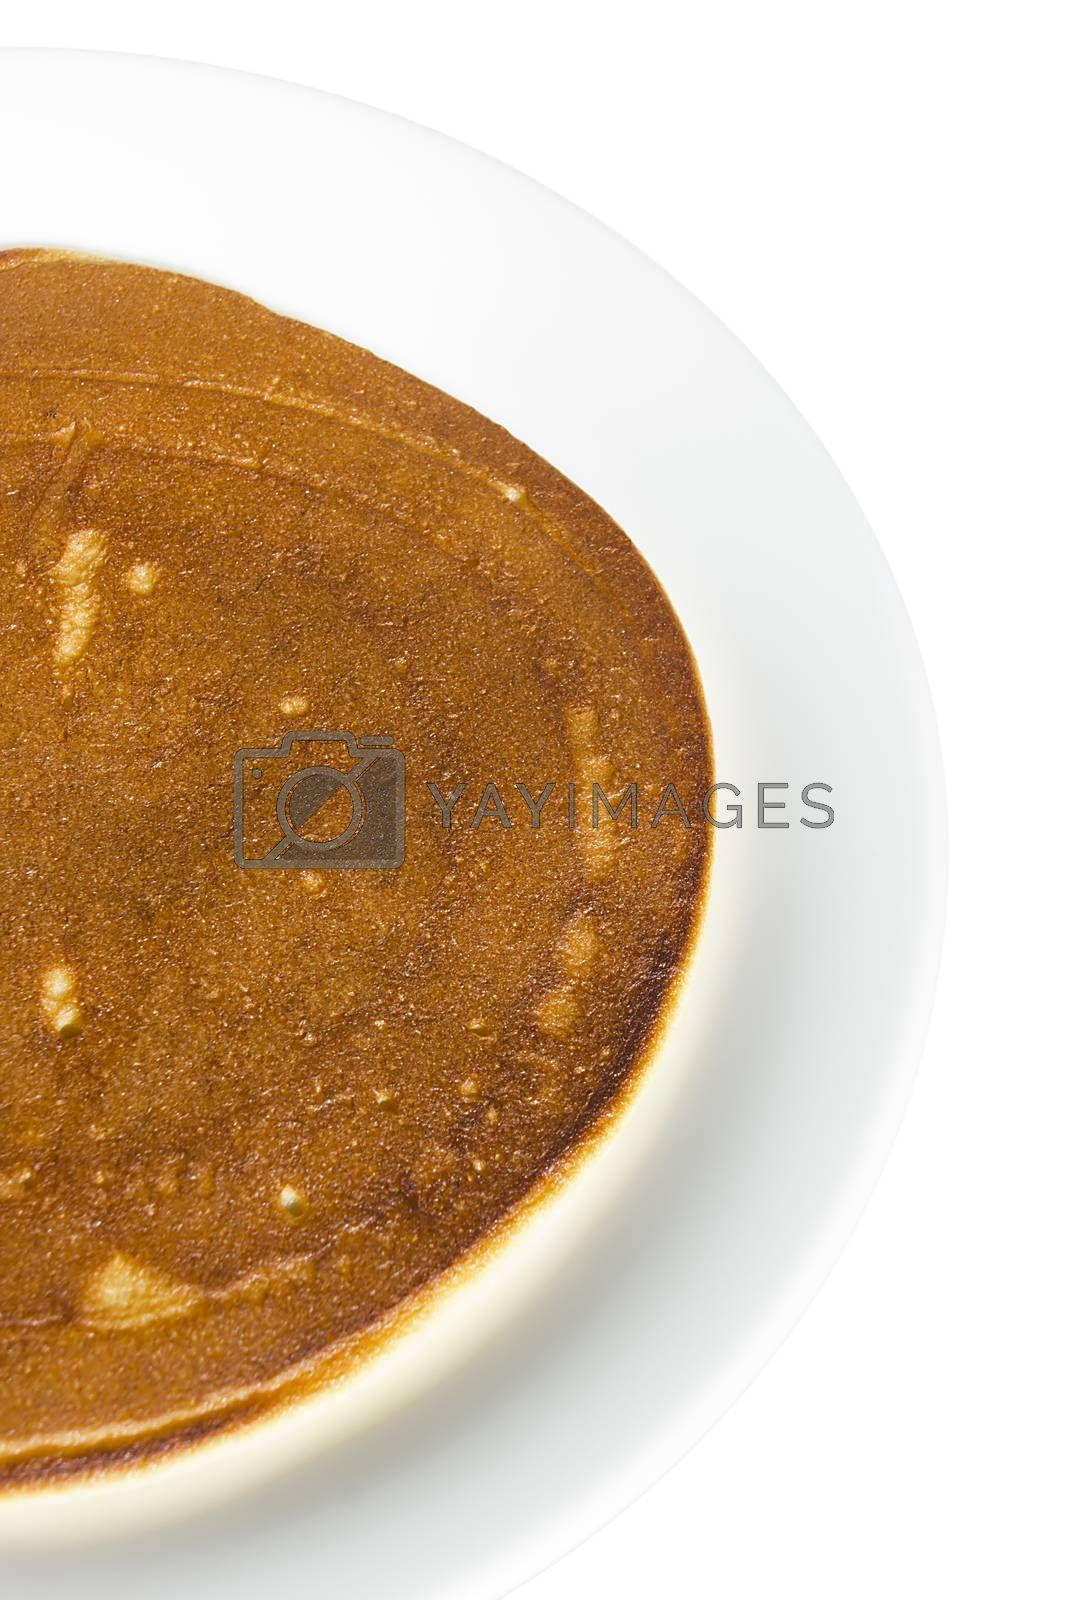 Freshly baked pancake on a plate on a white background